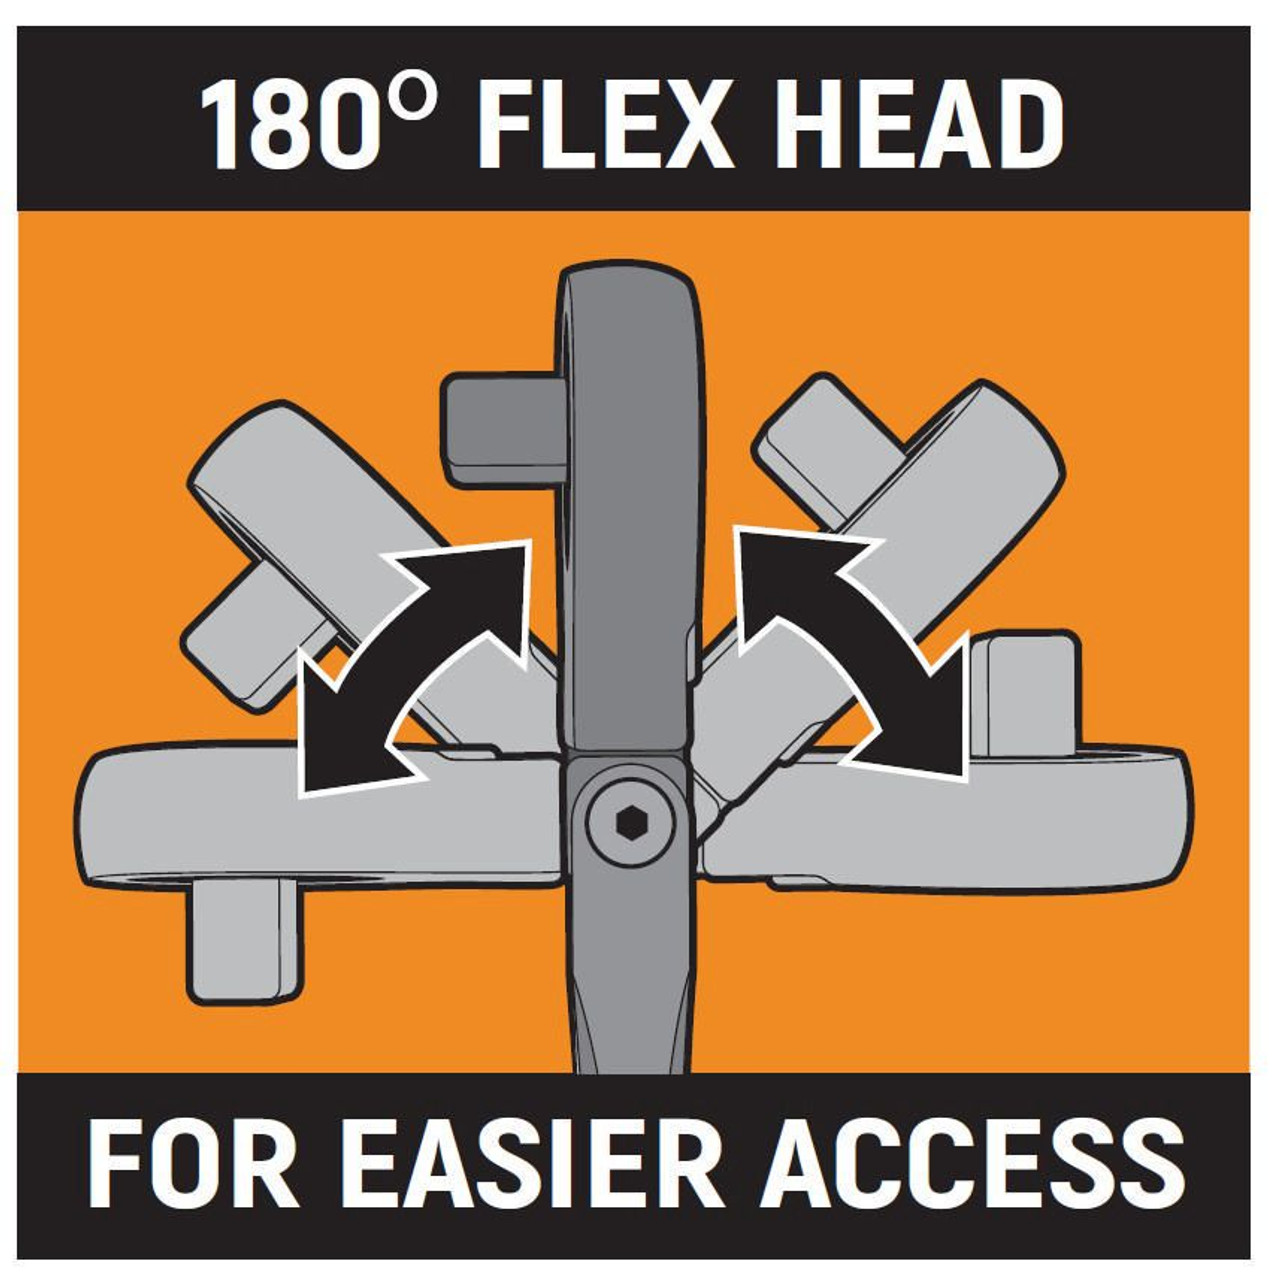 Gearwrench 180 degree flex head for easier access